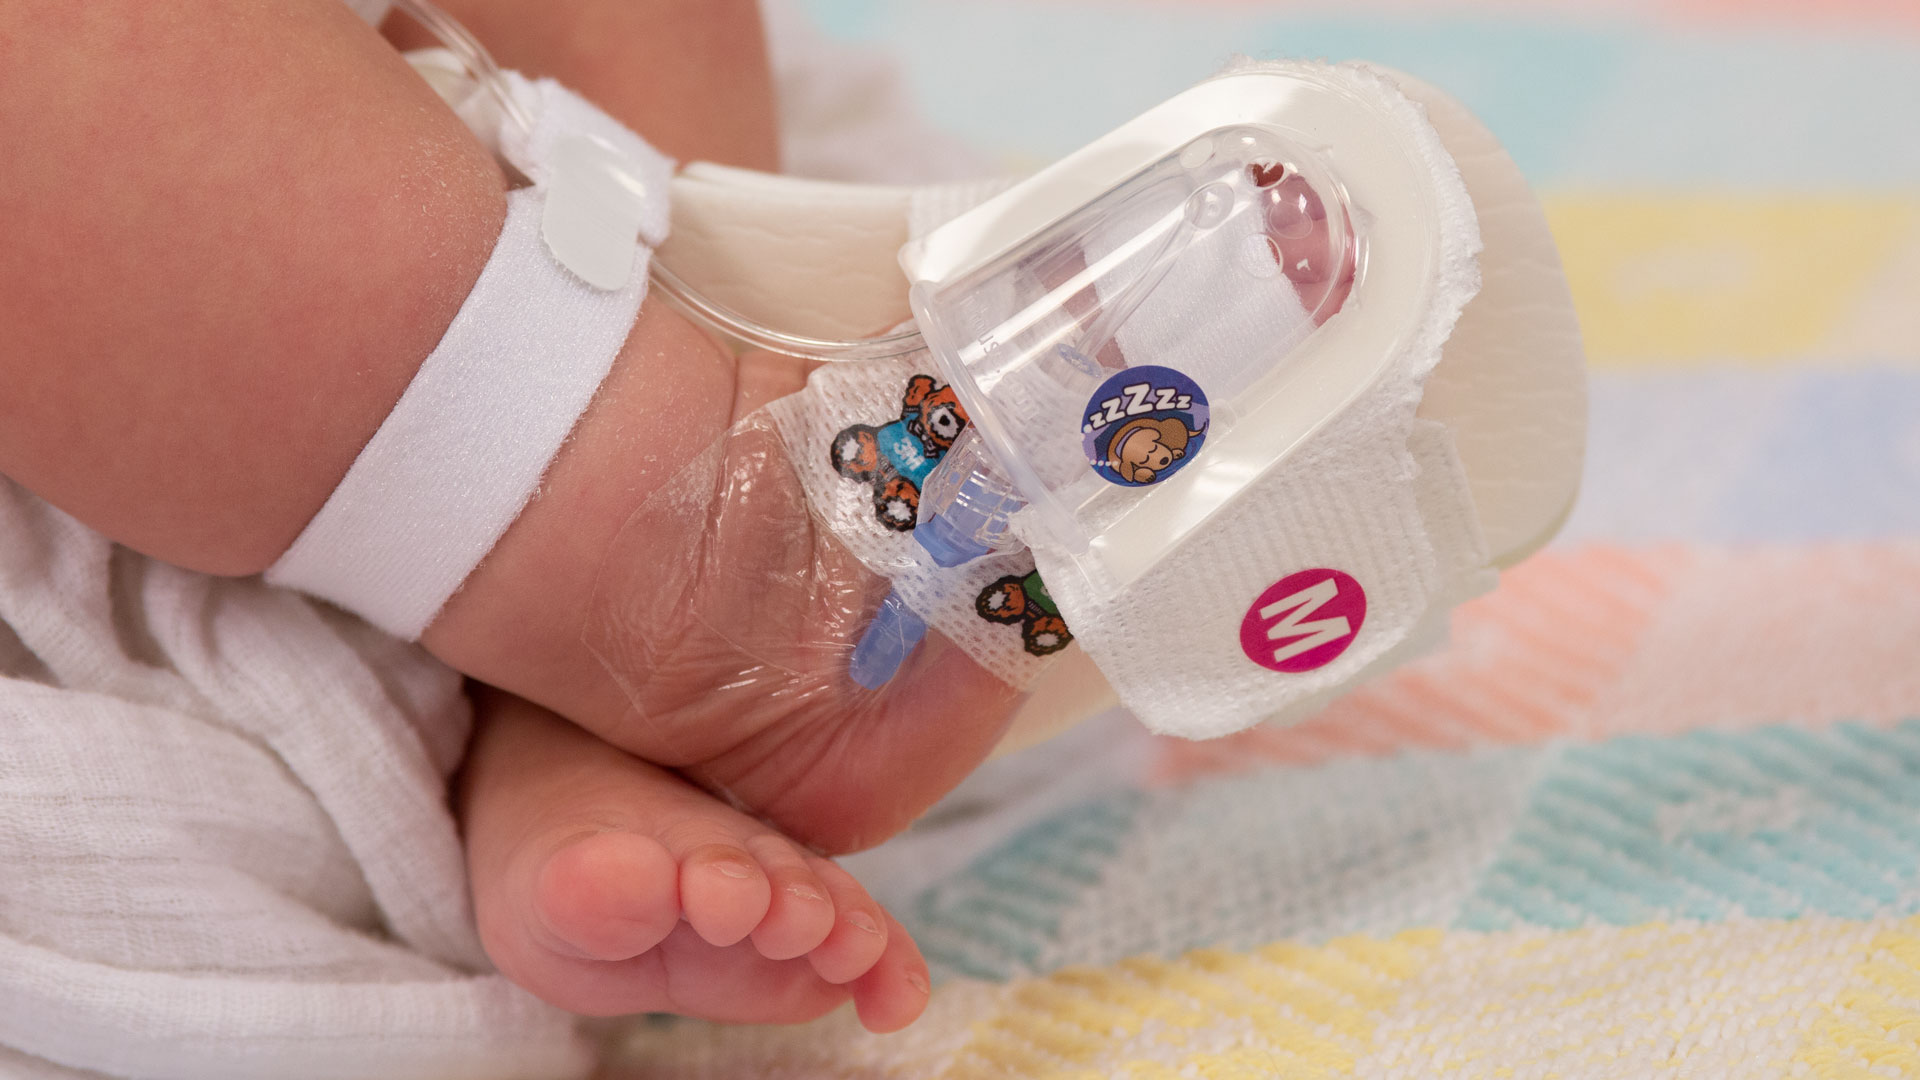 949S TLC Foot Splint and 330M I.V. House ultraDressing on Infant's foot